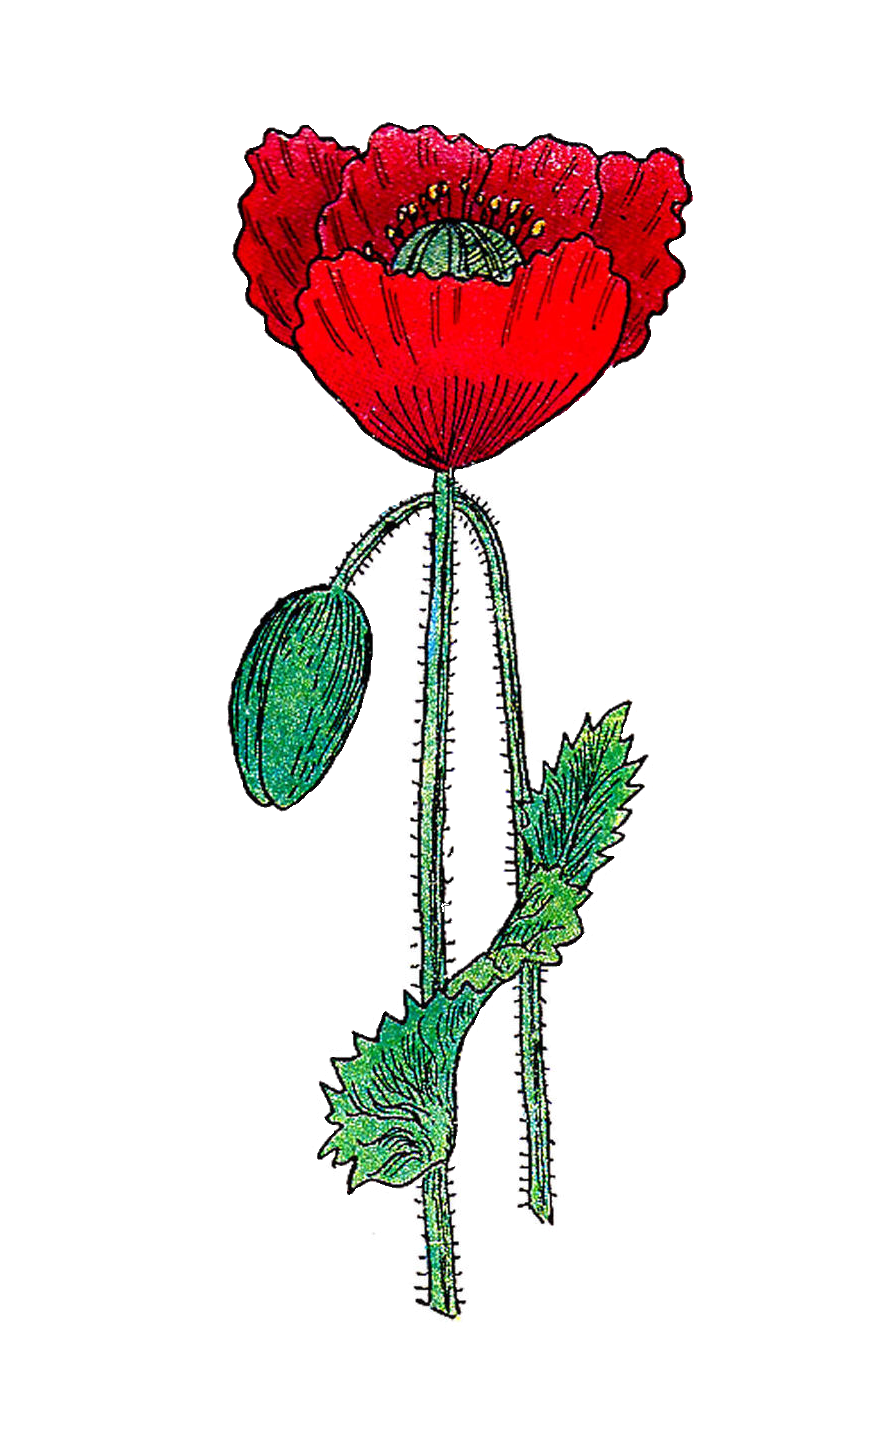 Antique images free botanical. Poppy clipart illustration